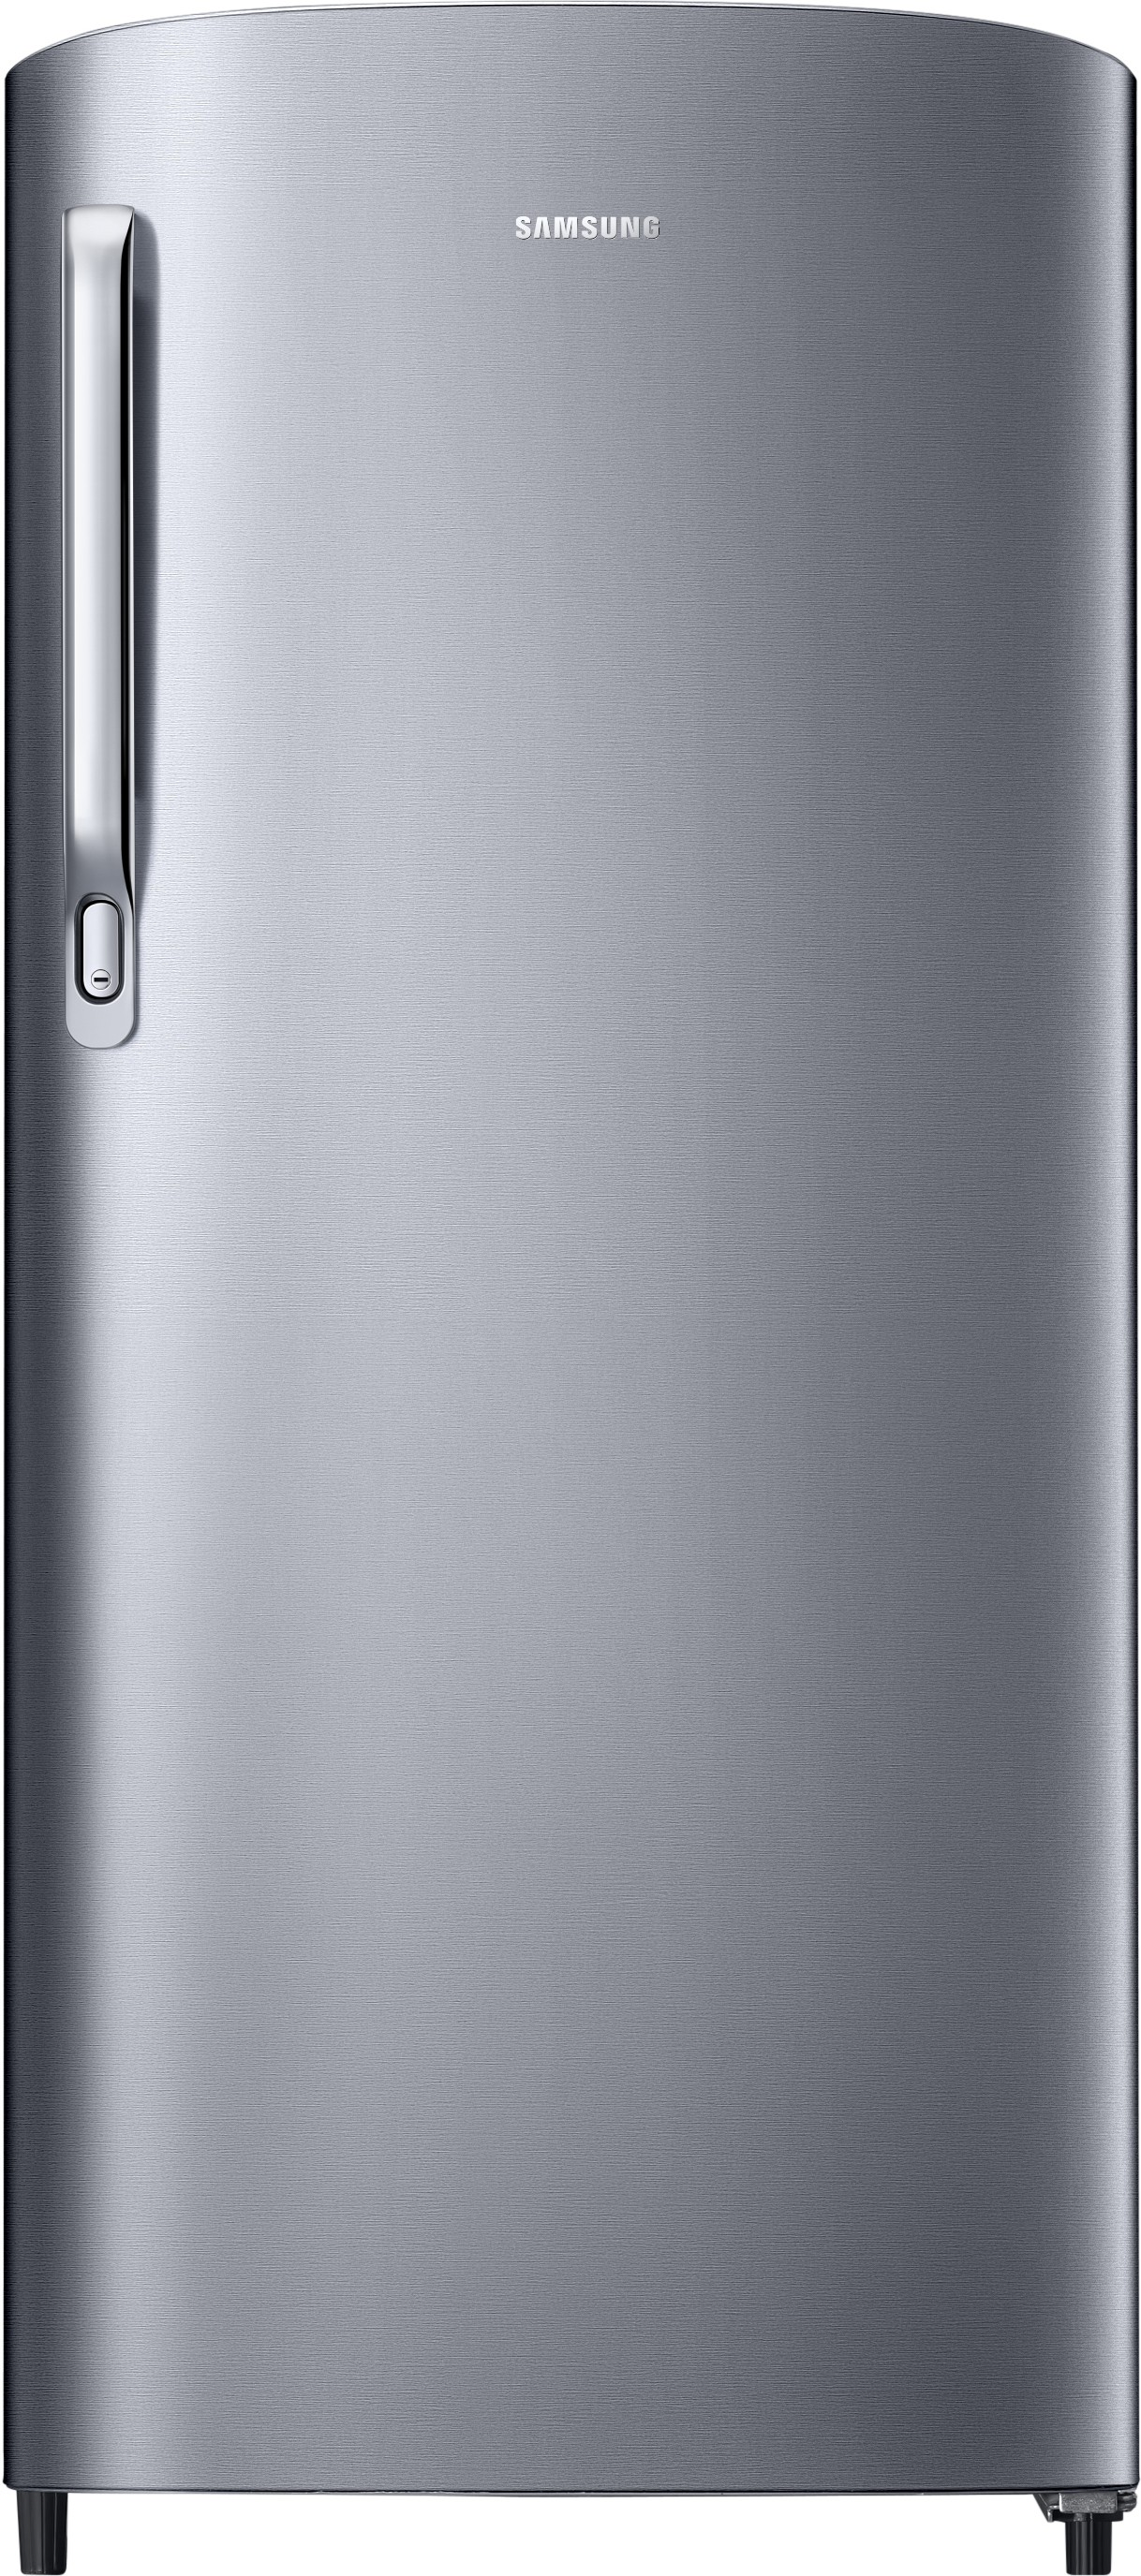 View SAMSUNG 192 L Direct Cool Single Door Refrigerator(RR19M1723S8/HL, Elegant Inox, 2017)  Price Online